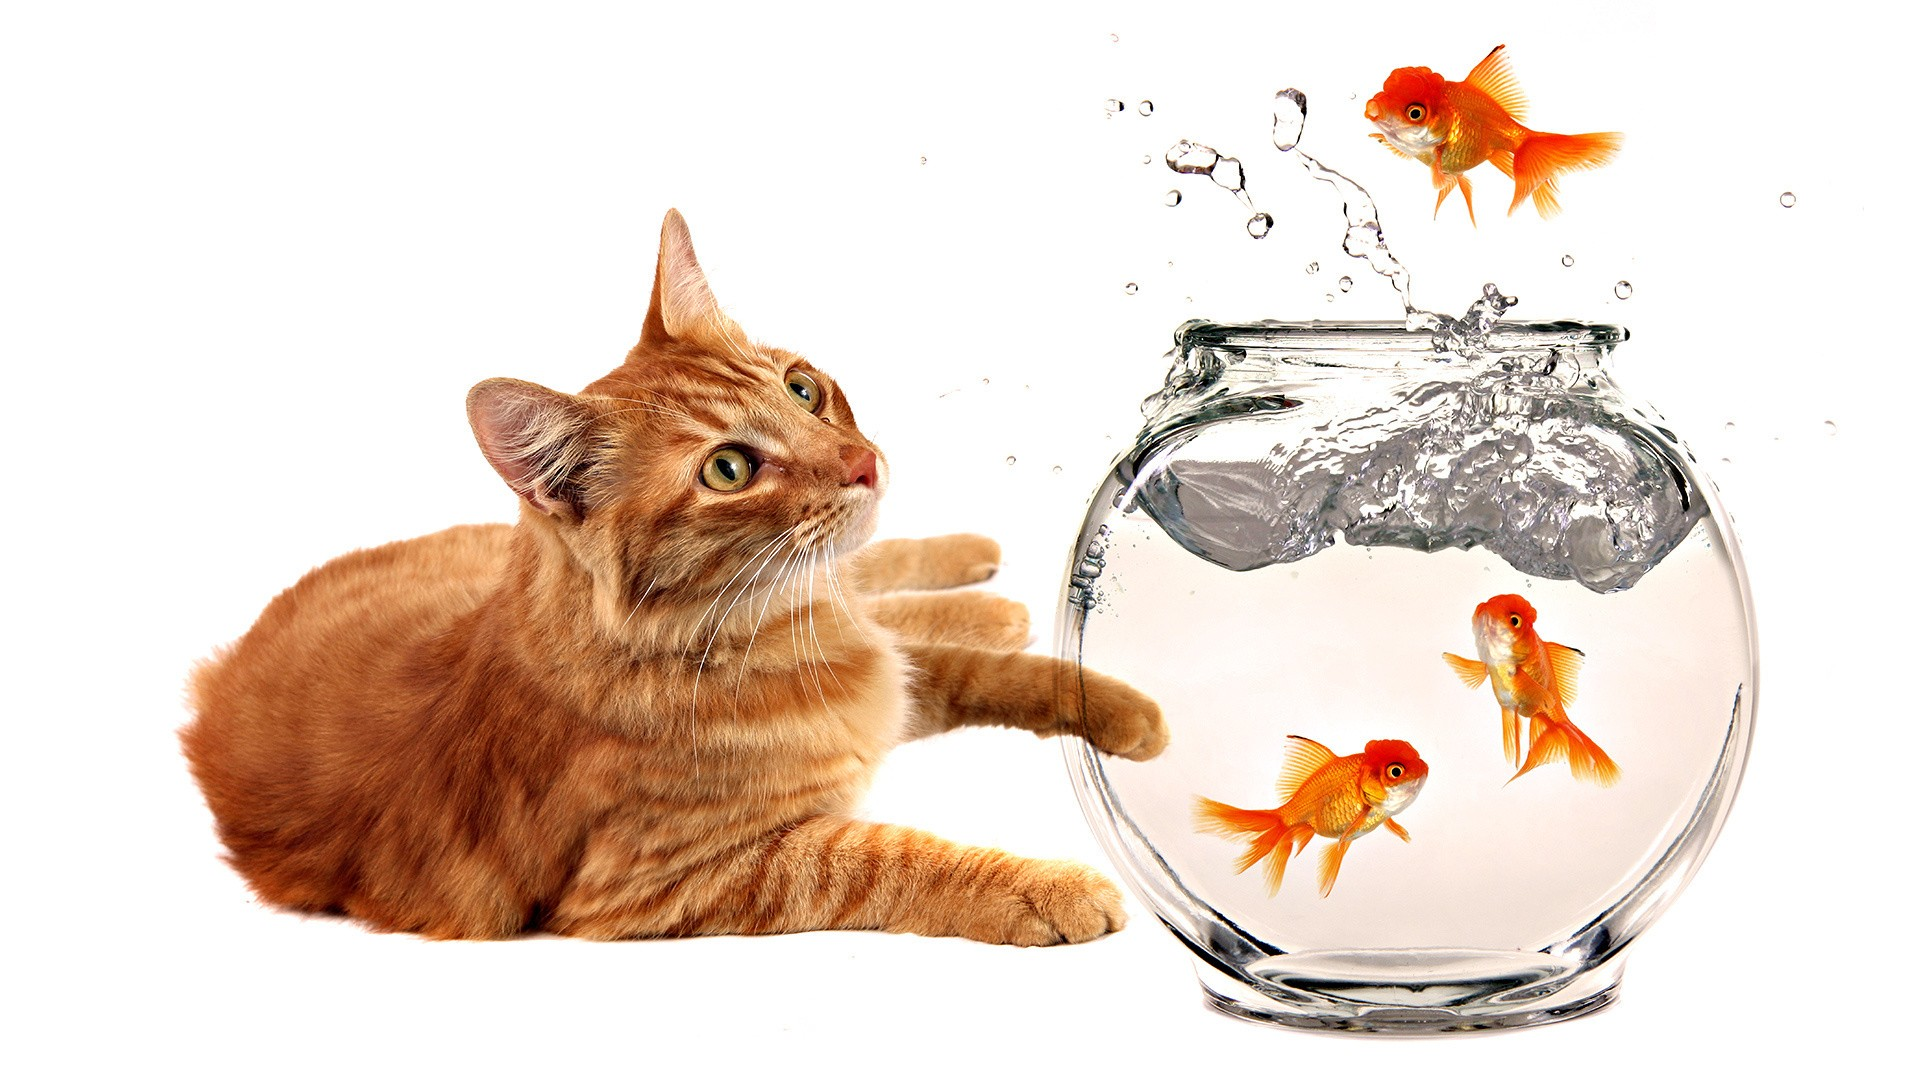 Cats animals fish goldfish fish bowls wallpaper for Fish videos for cats